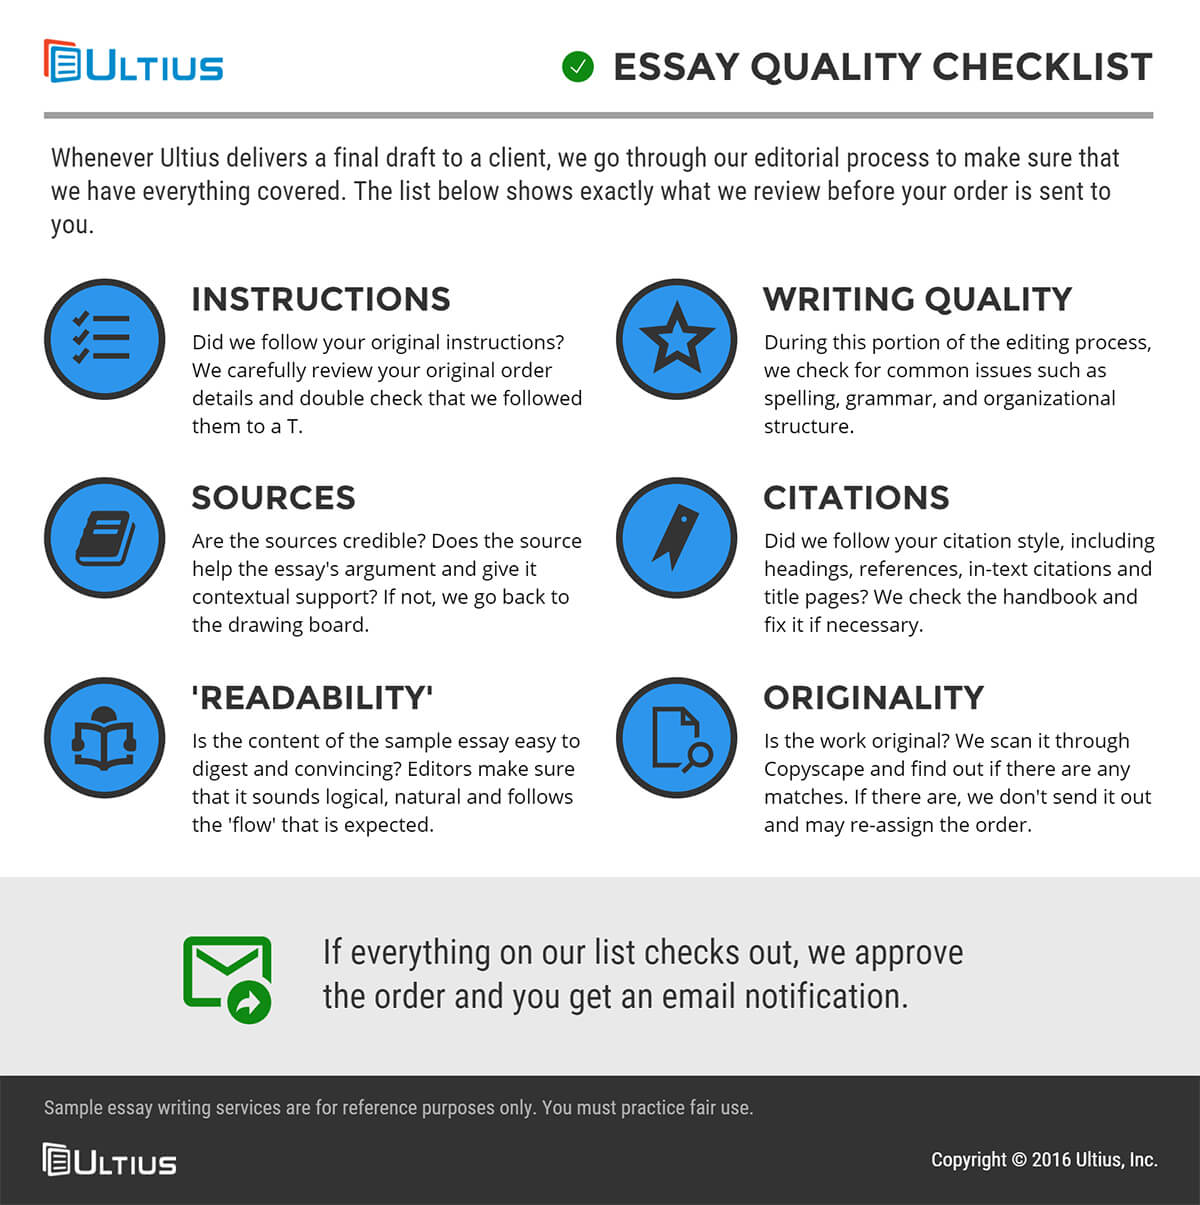 components of a persuasive essay buy persuasive essay online  buy persuasive essay online professional american writers ultius purchased persuasive essay quality checklist